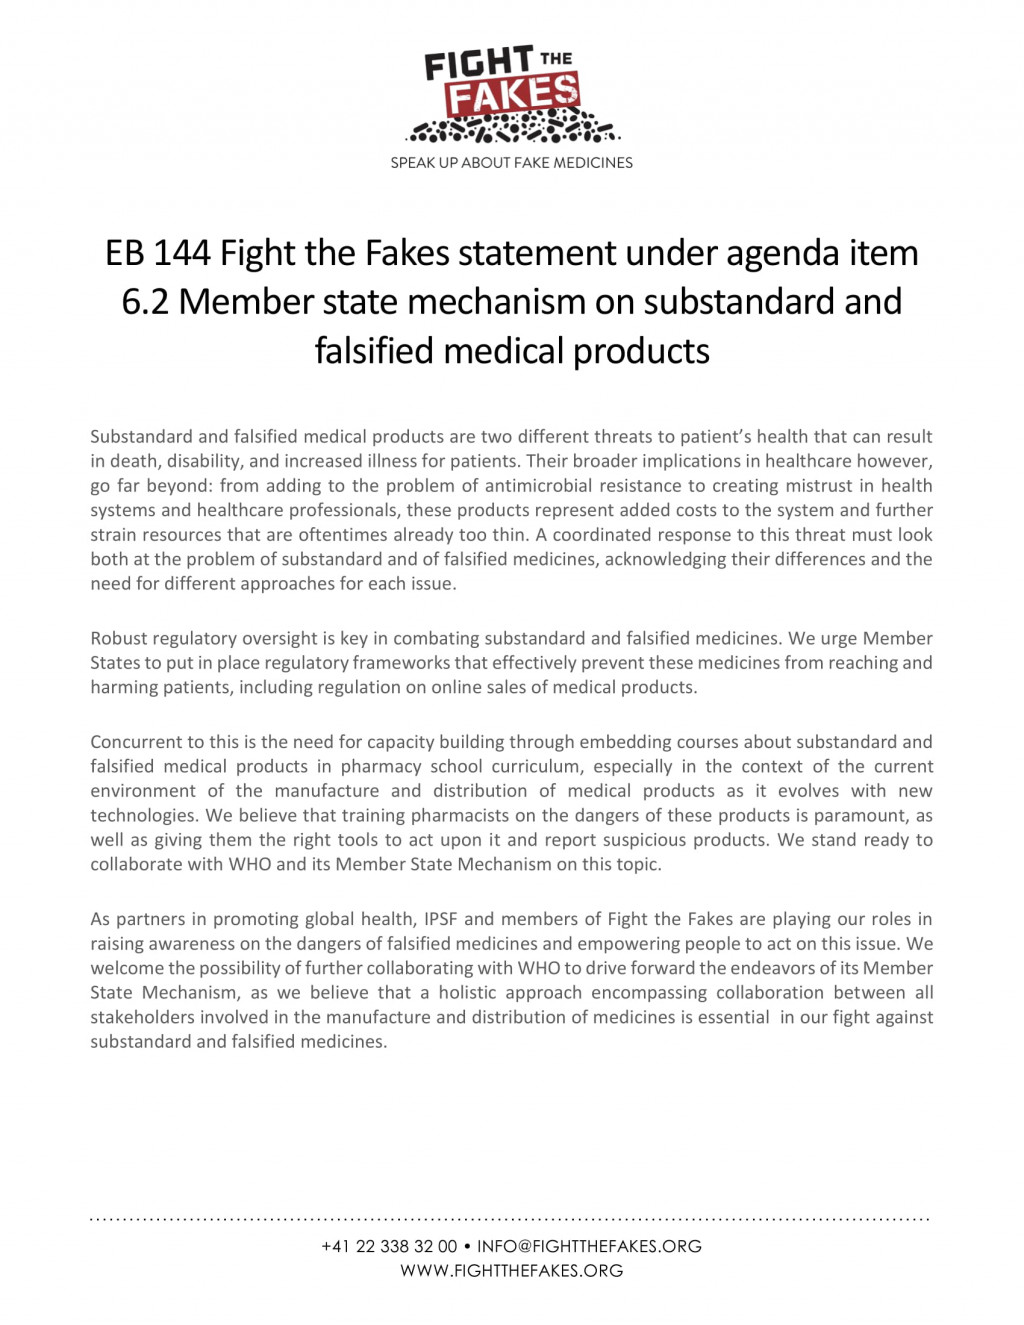 EB144-Fight-the-Fakes-statement-under-agenda-item-6.2_30.01.2019-1